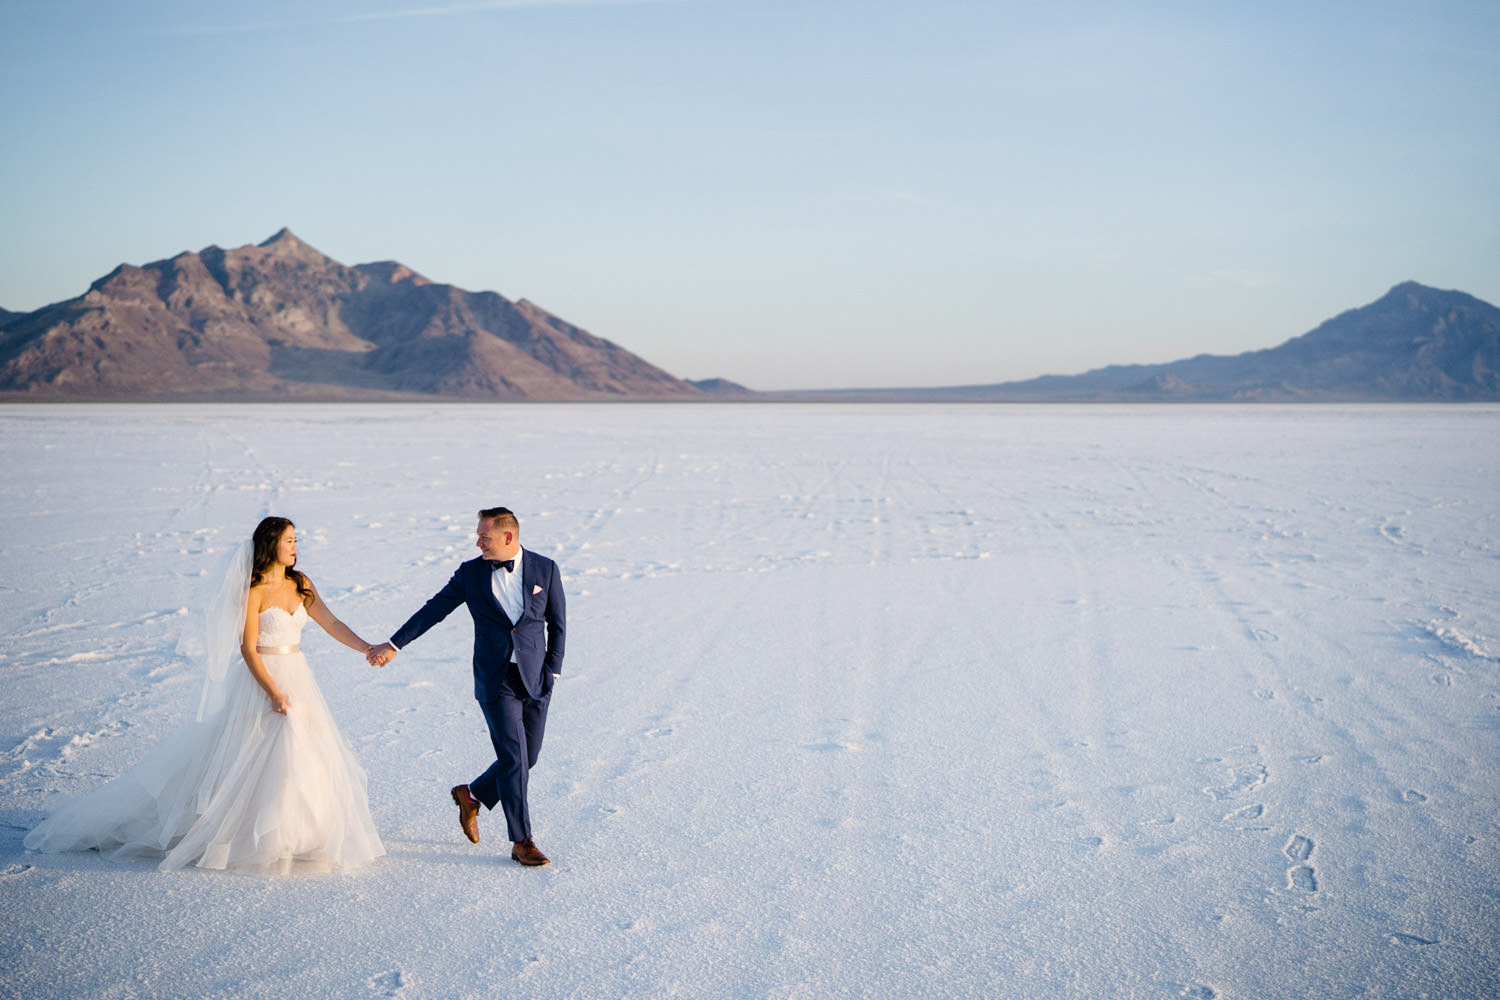 Bonneville Salt Flats wedding groom leading bride photo